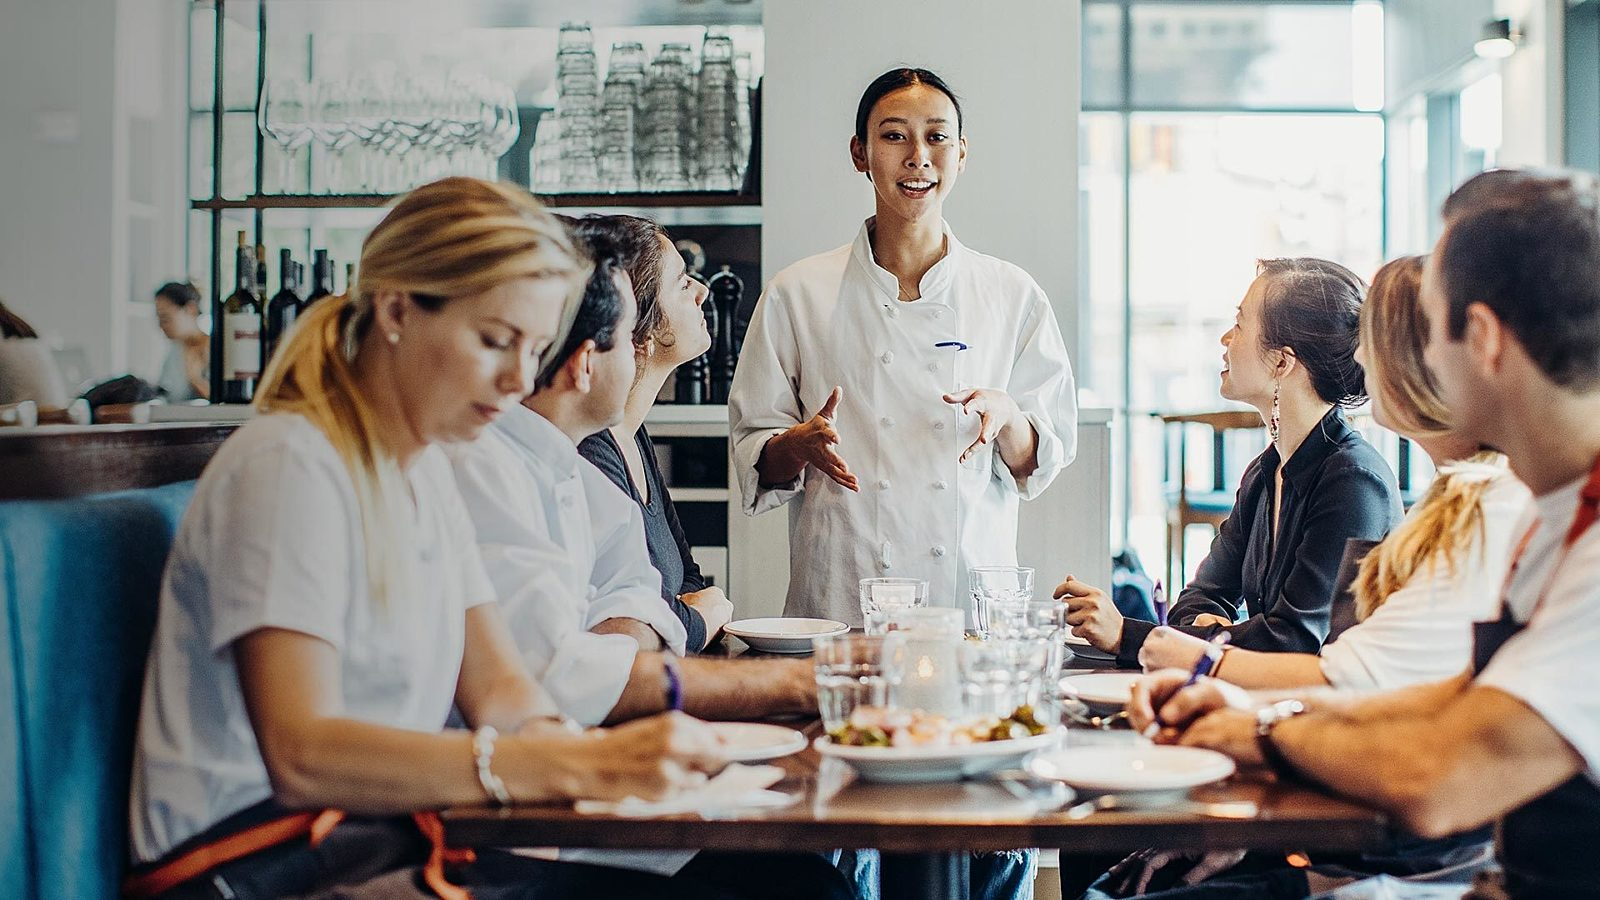 A chef leads a pre-shift meeting about an employee incentive program.